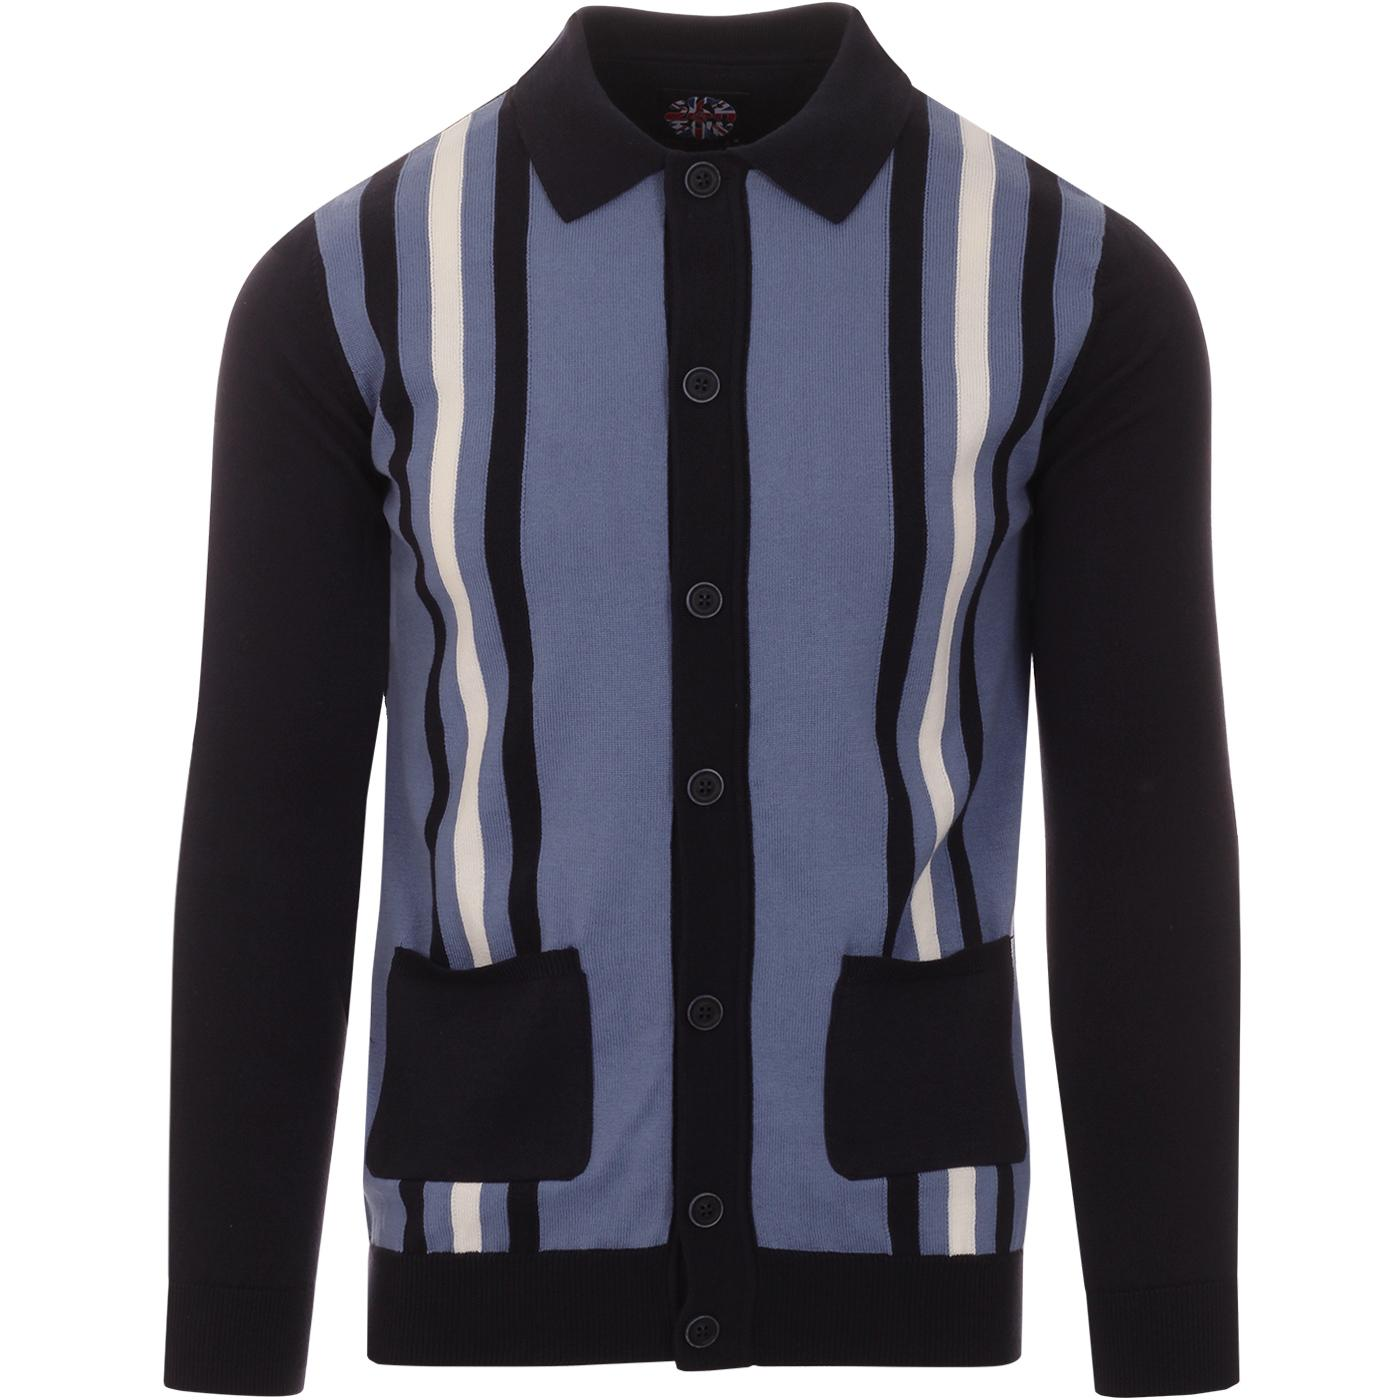 SKA & SOUL 60s Mod Stripe Knit Polo Cardigan NAVY